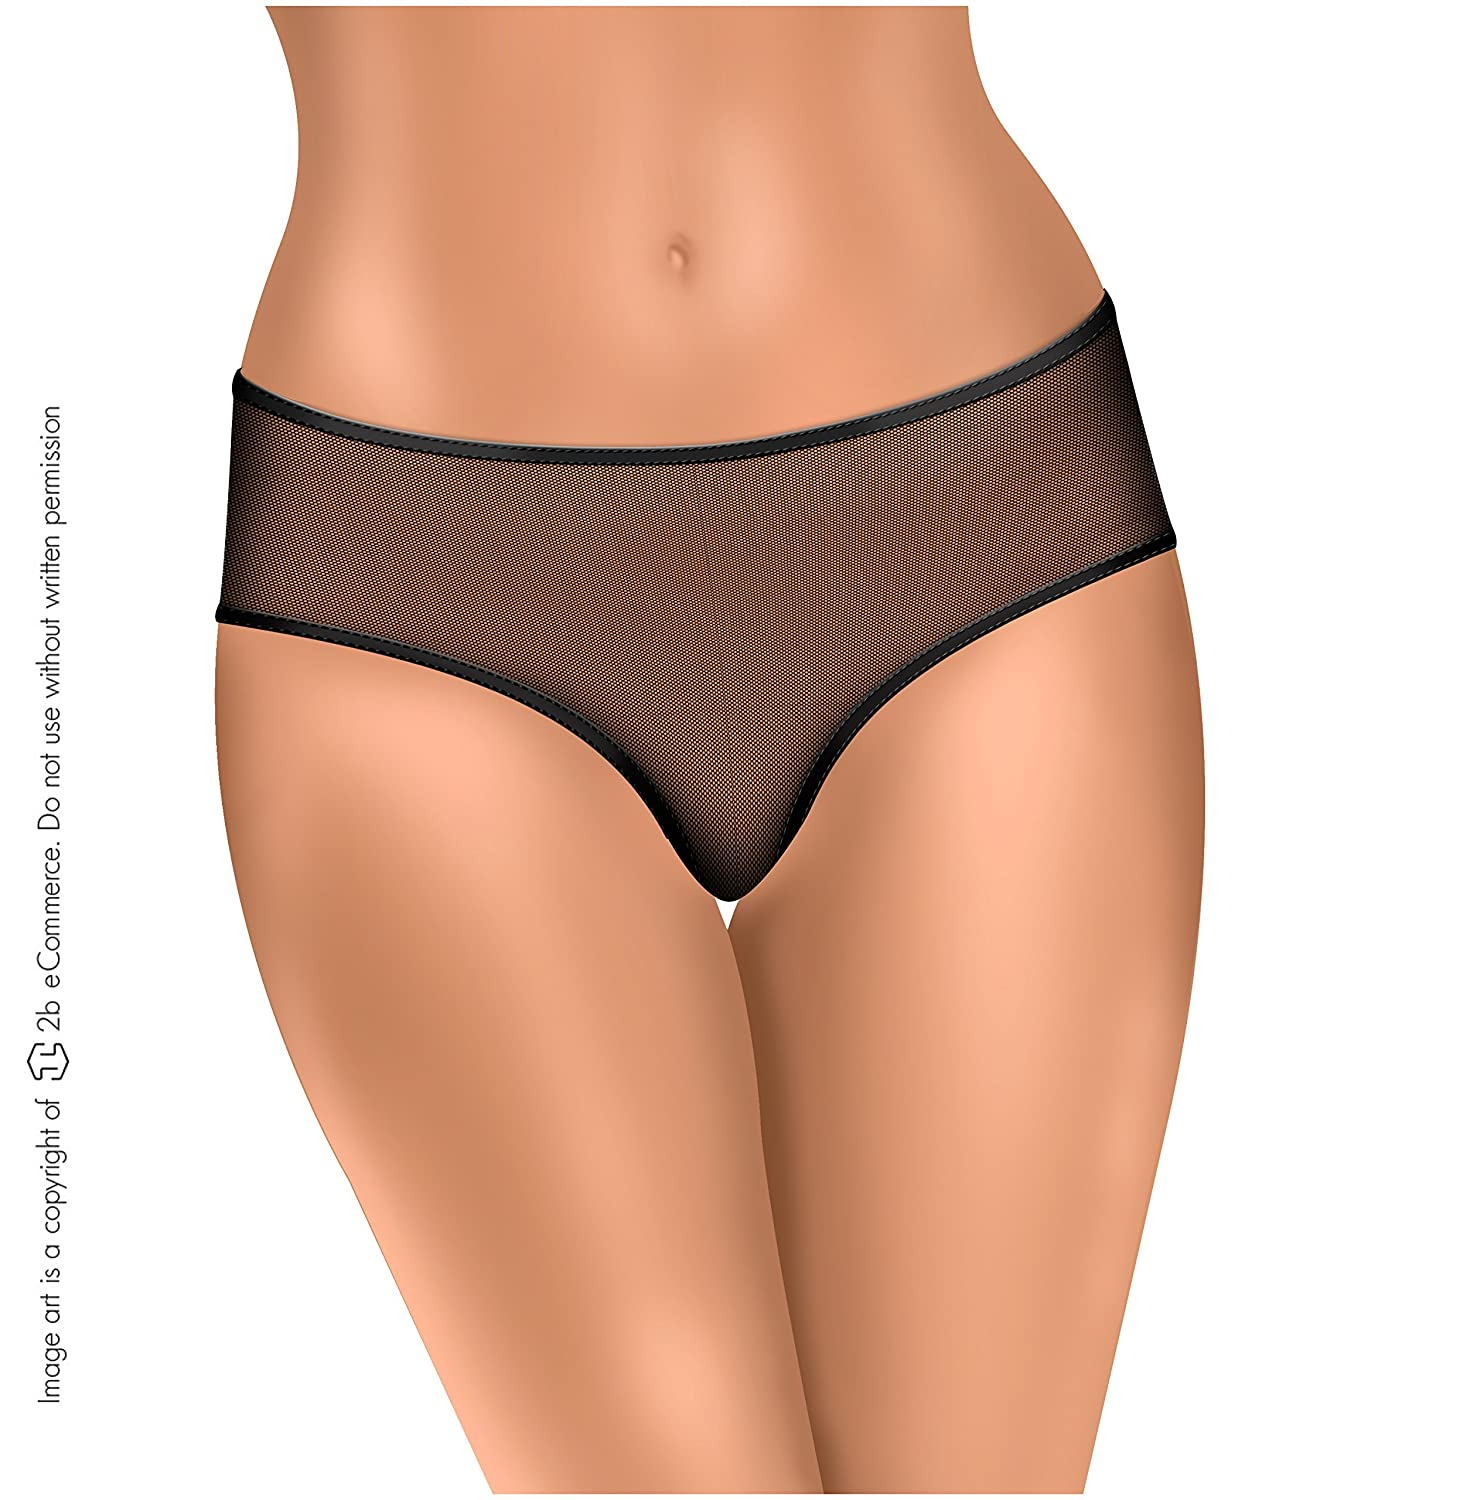 Amawi 1103 Sexy Lace Panties for Women Sex Underwear Lenceria Erotica para Mujer at Amazon Womens Clothing store: